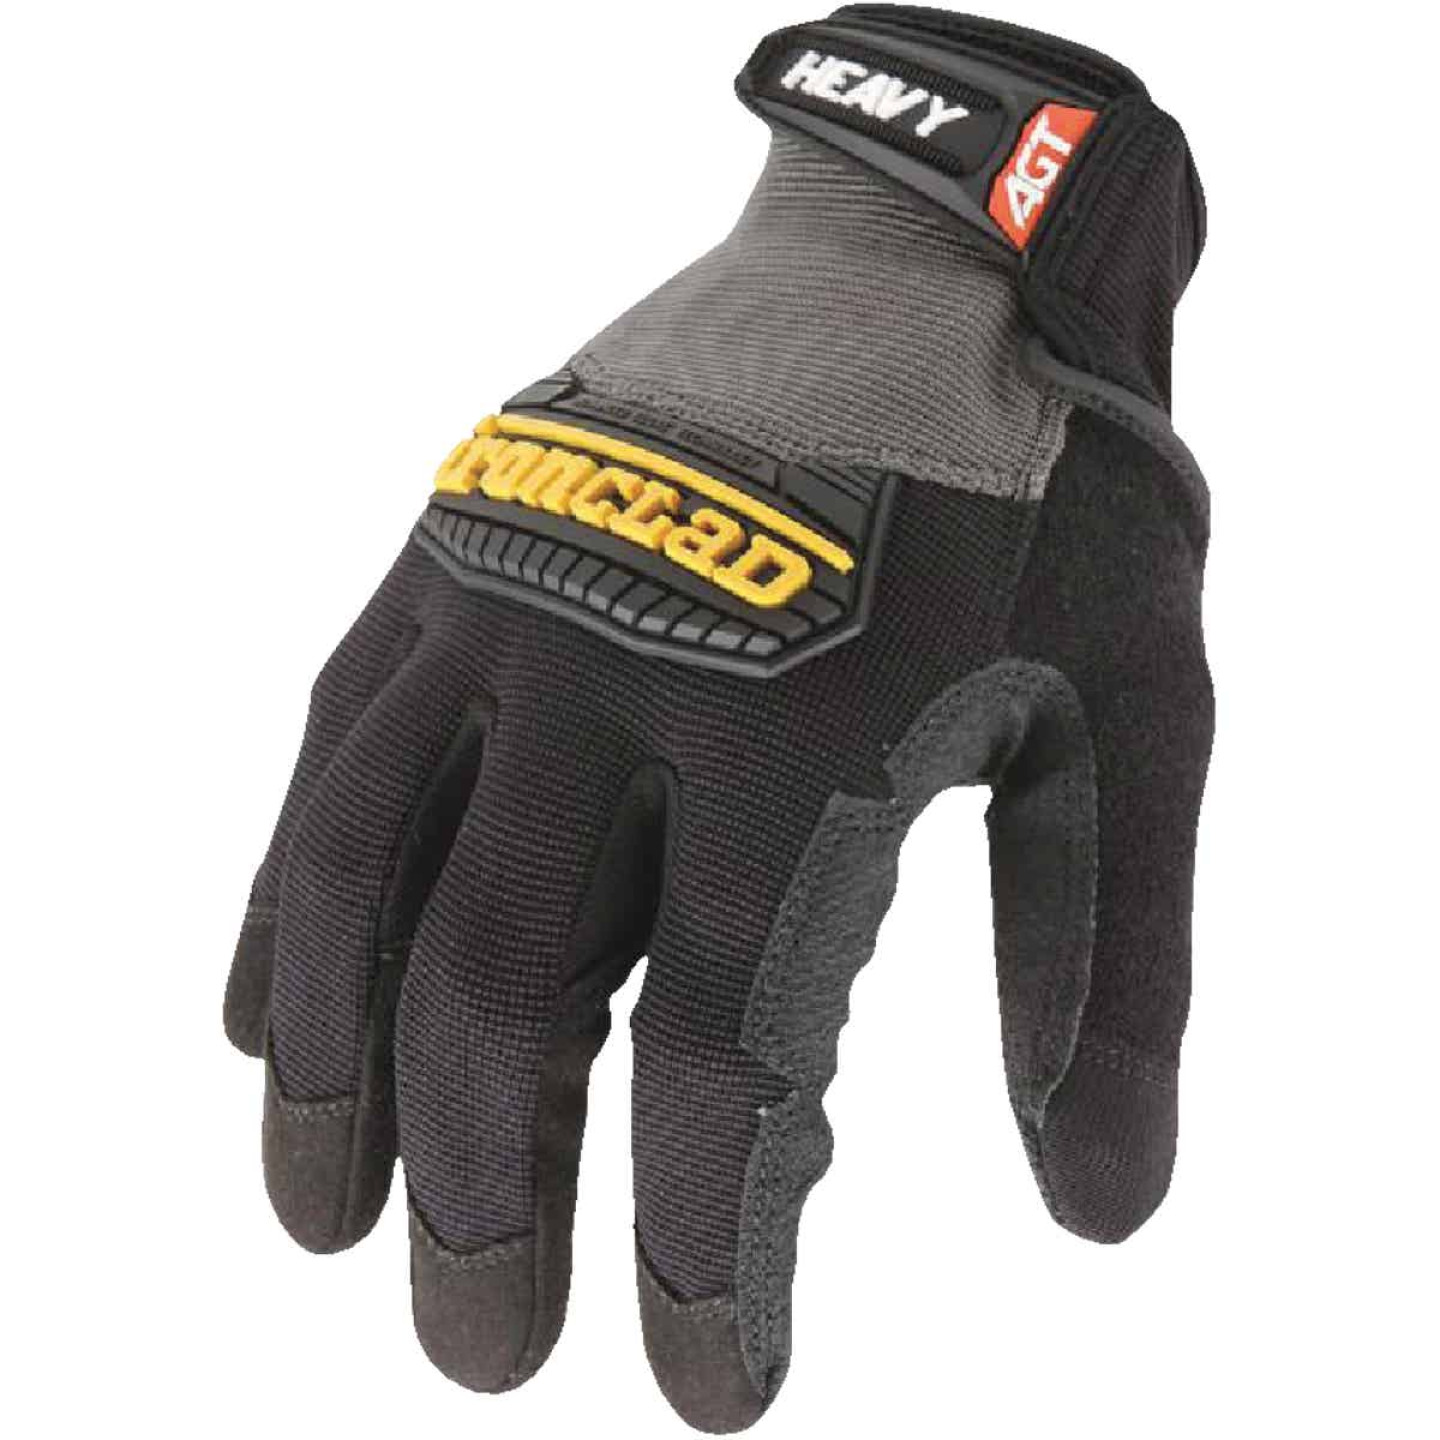 Ironclad Heavy Utility Men's Medium Synthetic Leather High Performance Glove Image 4